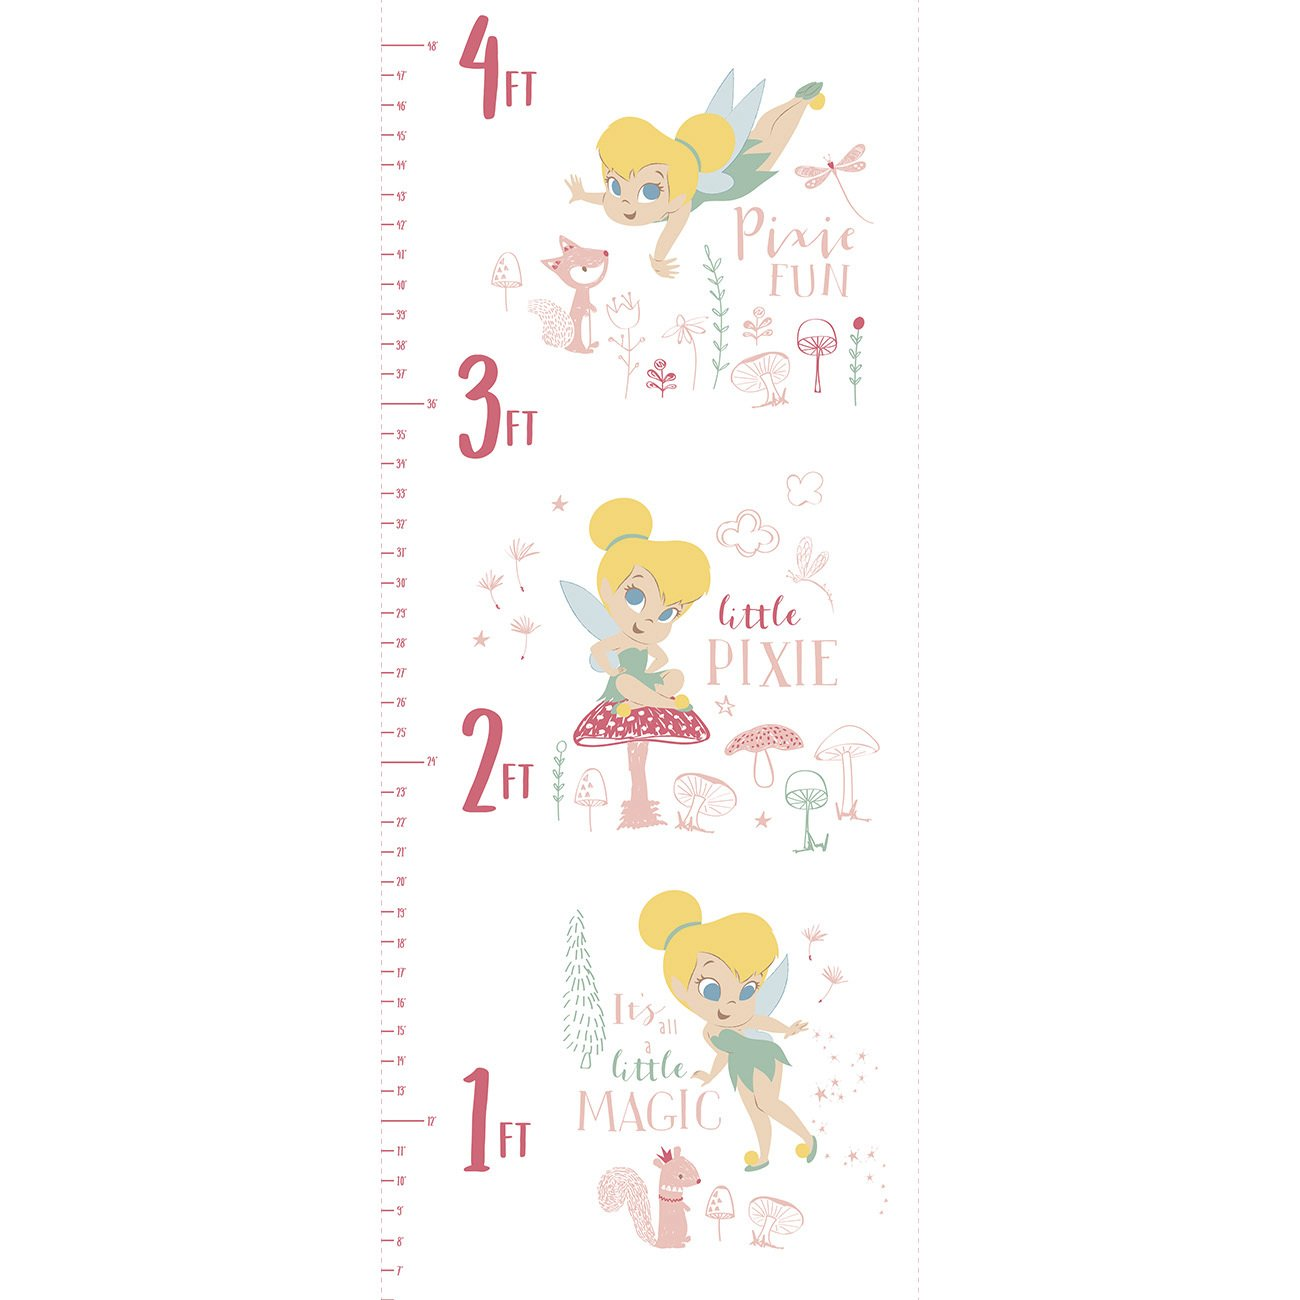 CF-Peter Pan & Tinkerbell 85400305P-01 White - Tinkerbell Growth Chart Panel